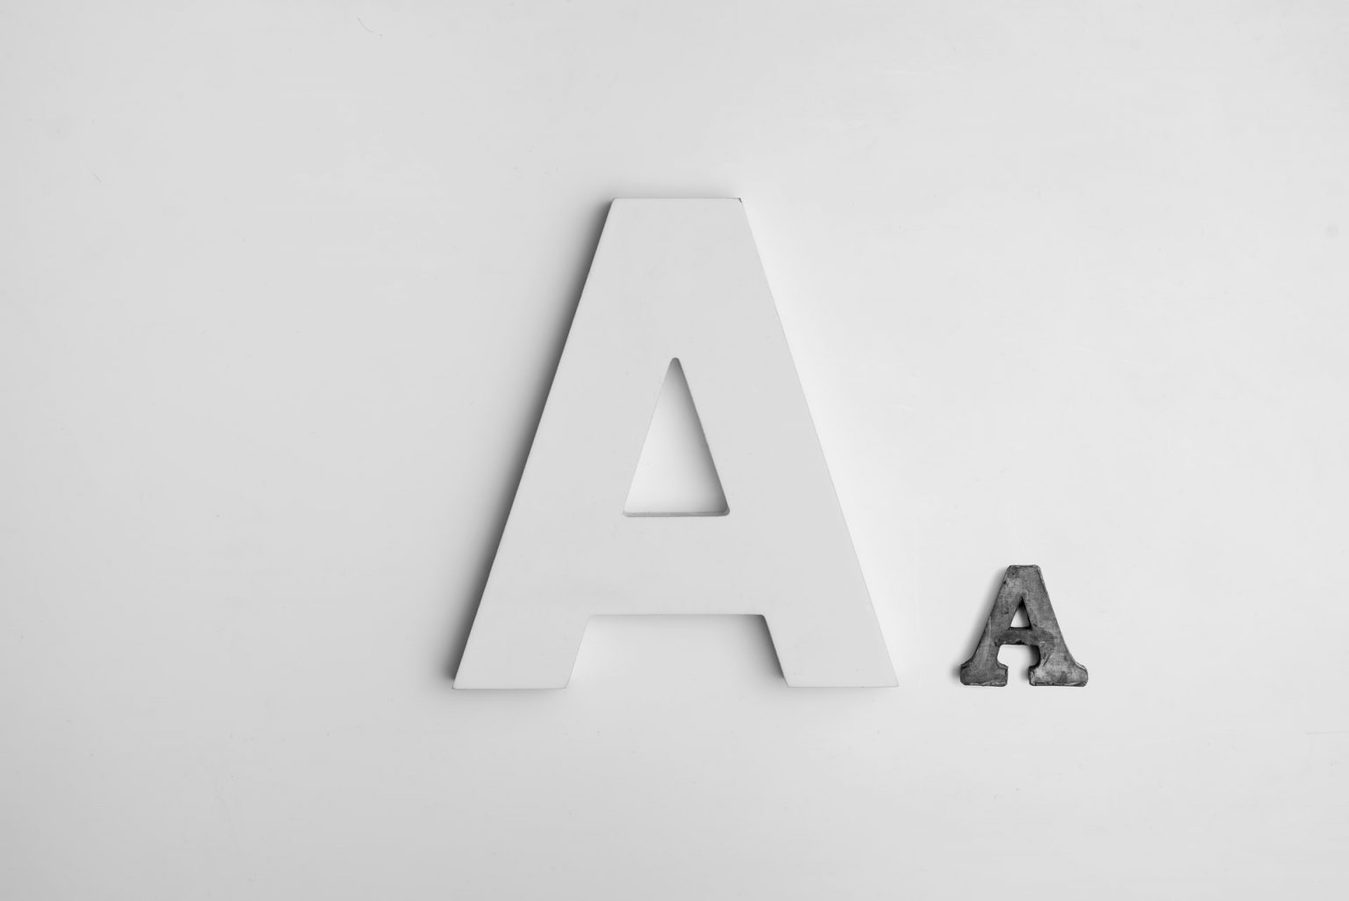 A white and a black letter against a white background